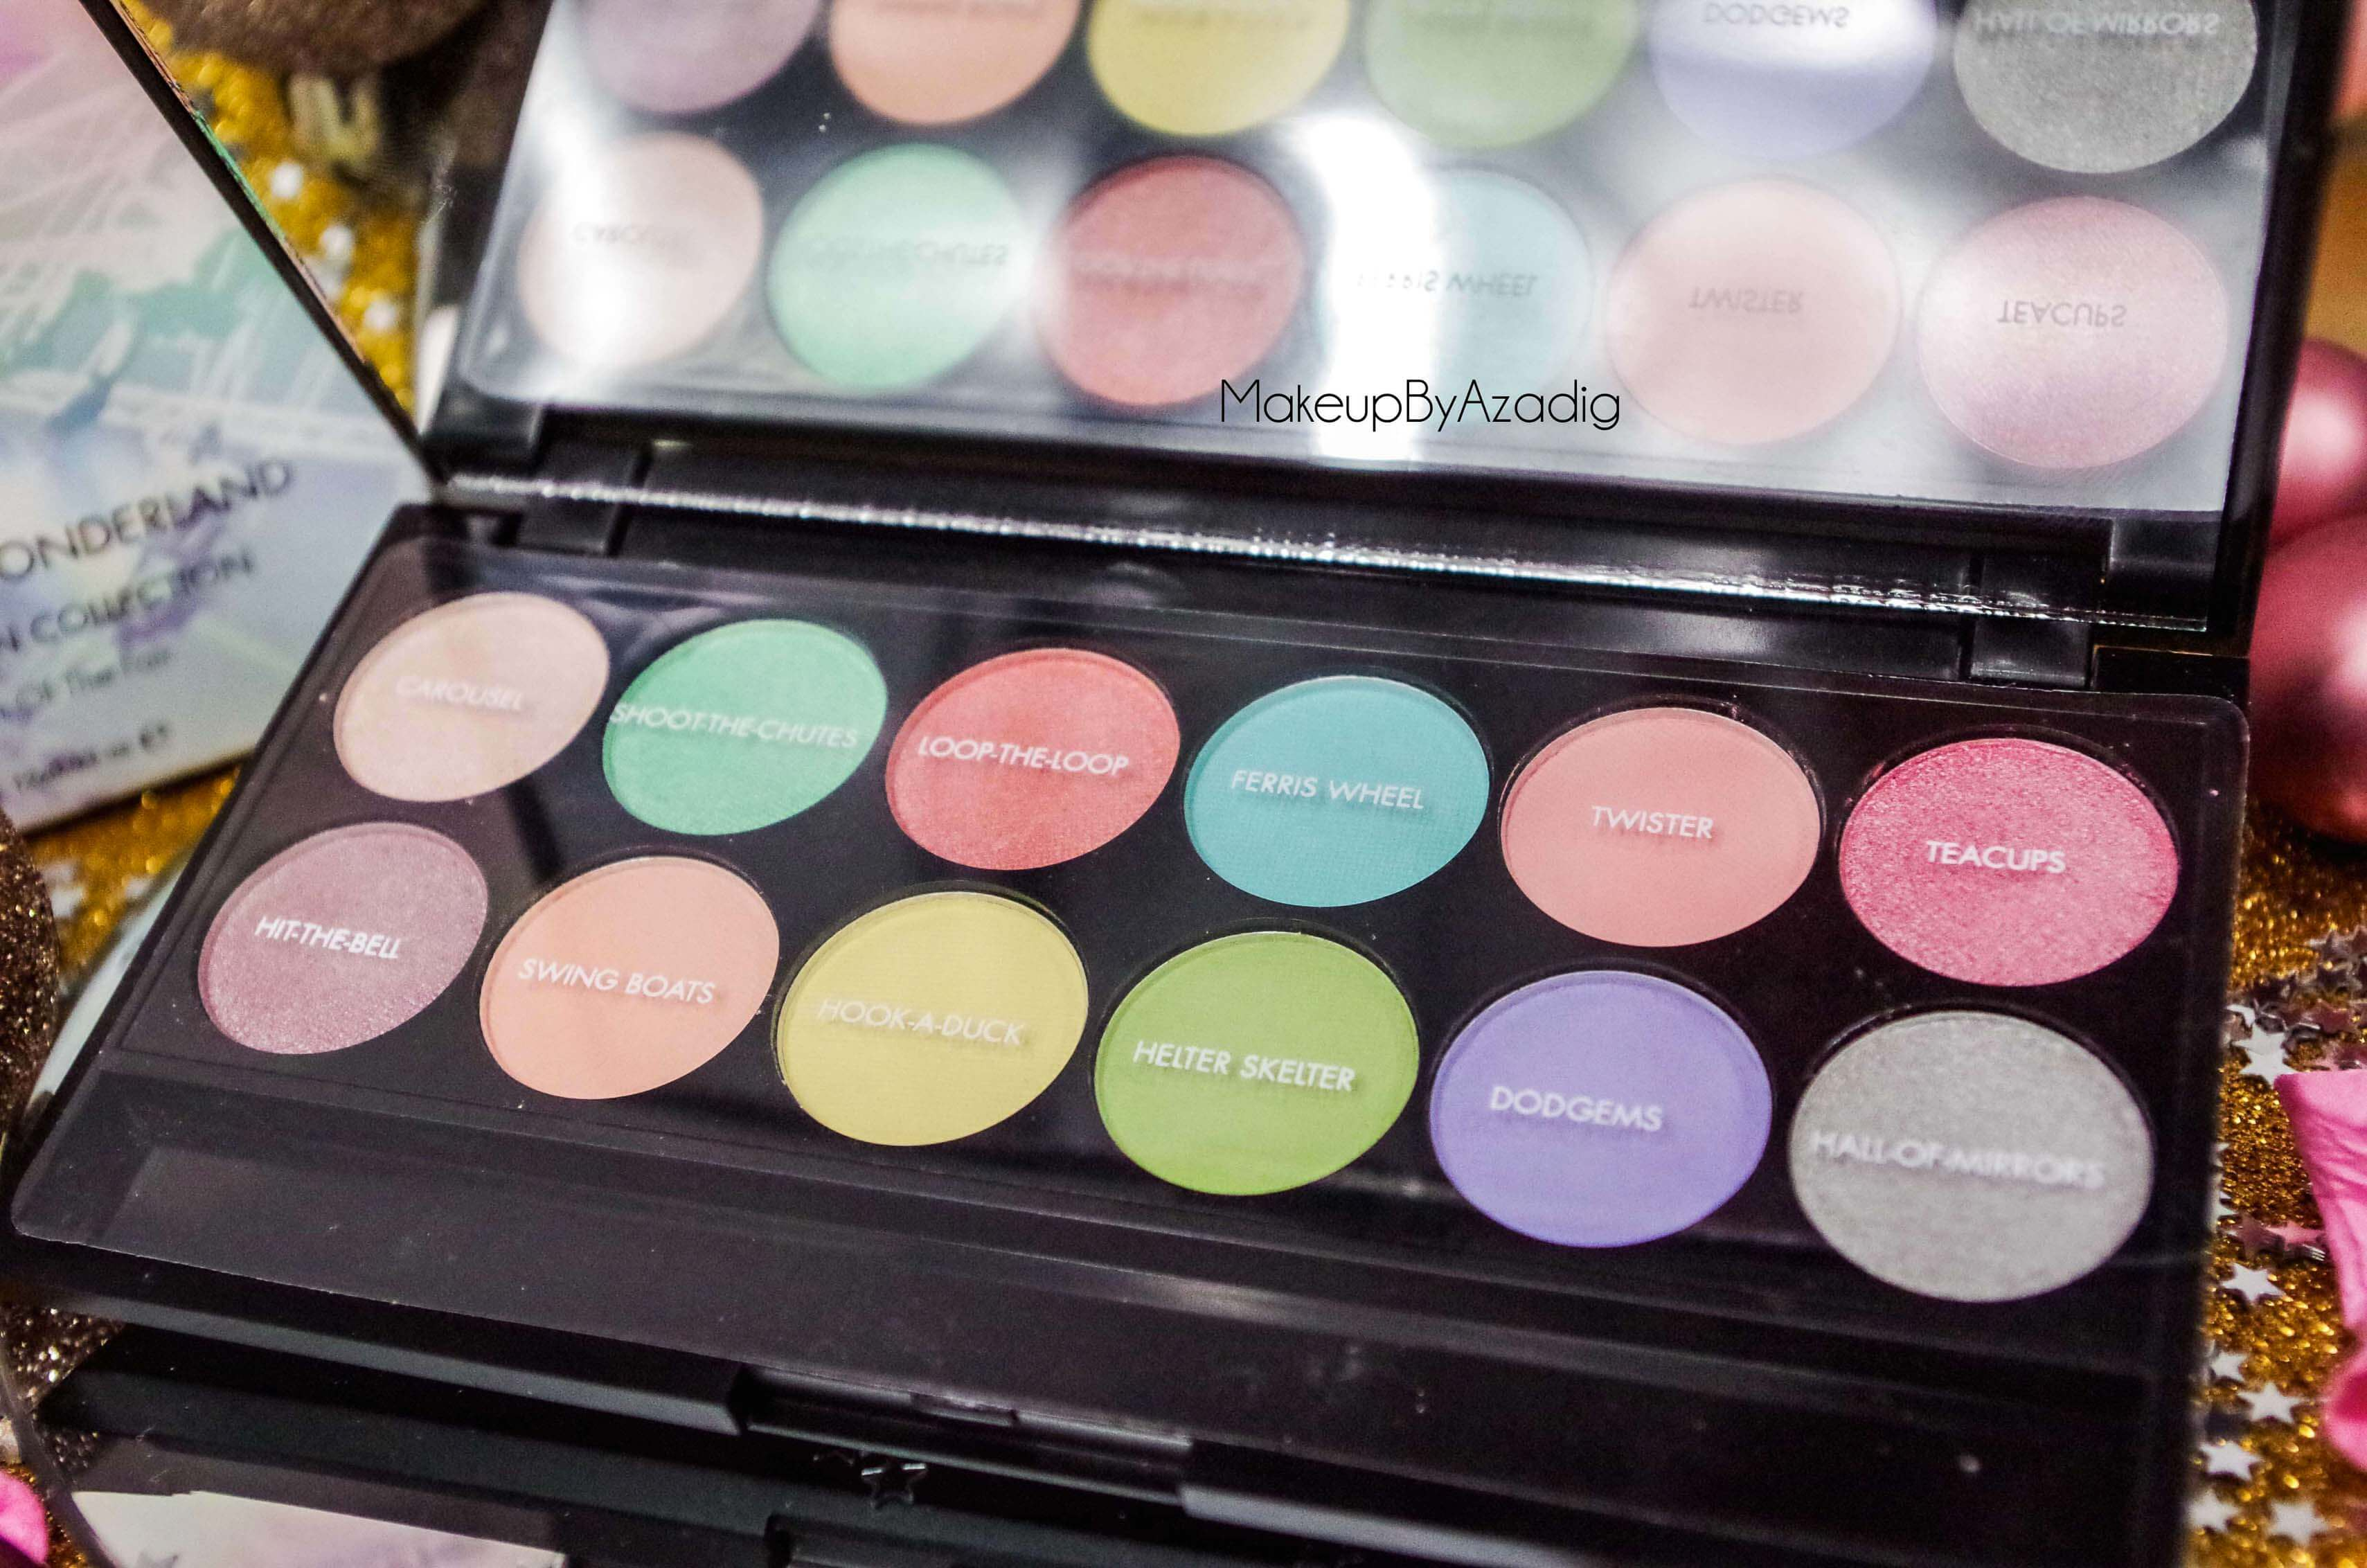 review-palette-sleek-makeup-idivine-pas-cher-sephora-couleurs-allthefunofthefair-code-promo-sephora-paris-makeupbyazadig-printemps-tendance-2